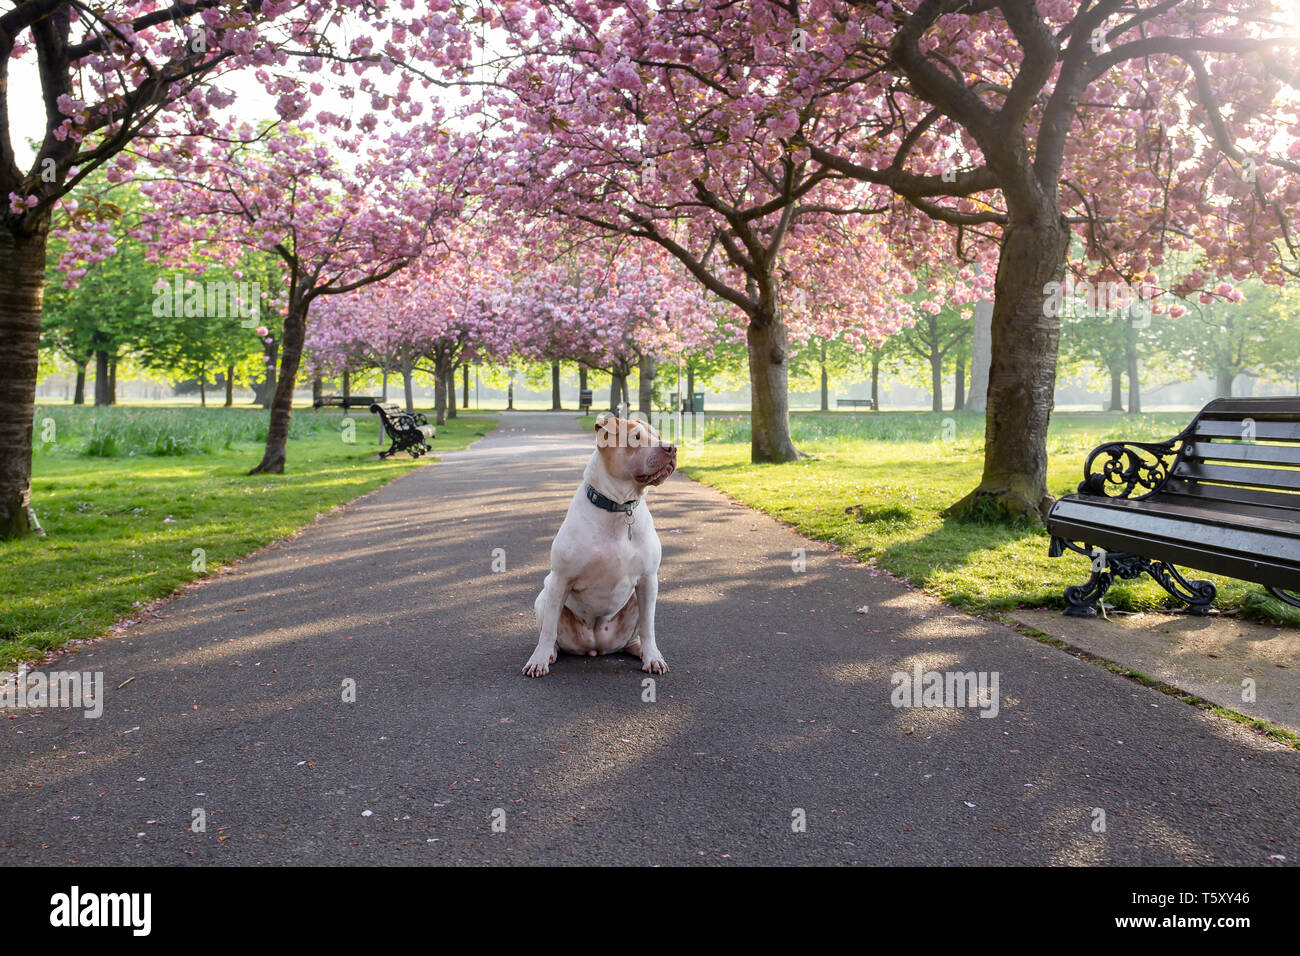 Dog staffordshire terrier sitting on a path with cherry blossom flower tree. - Stock Image